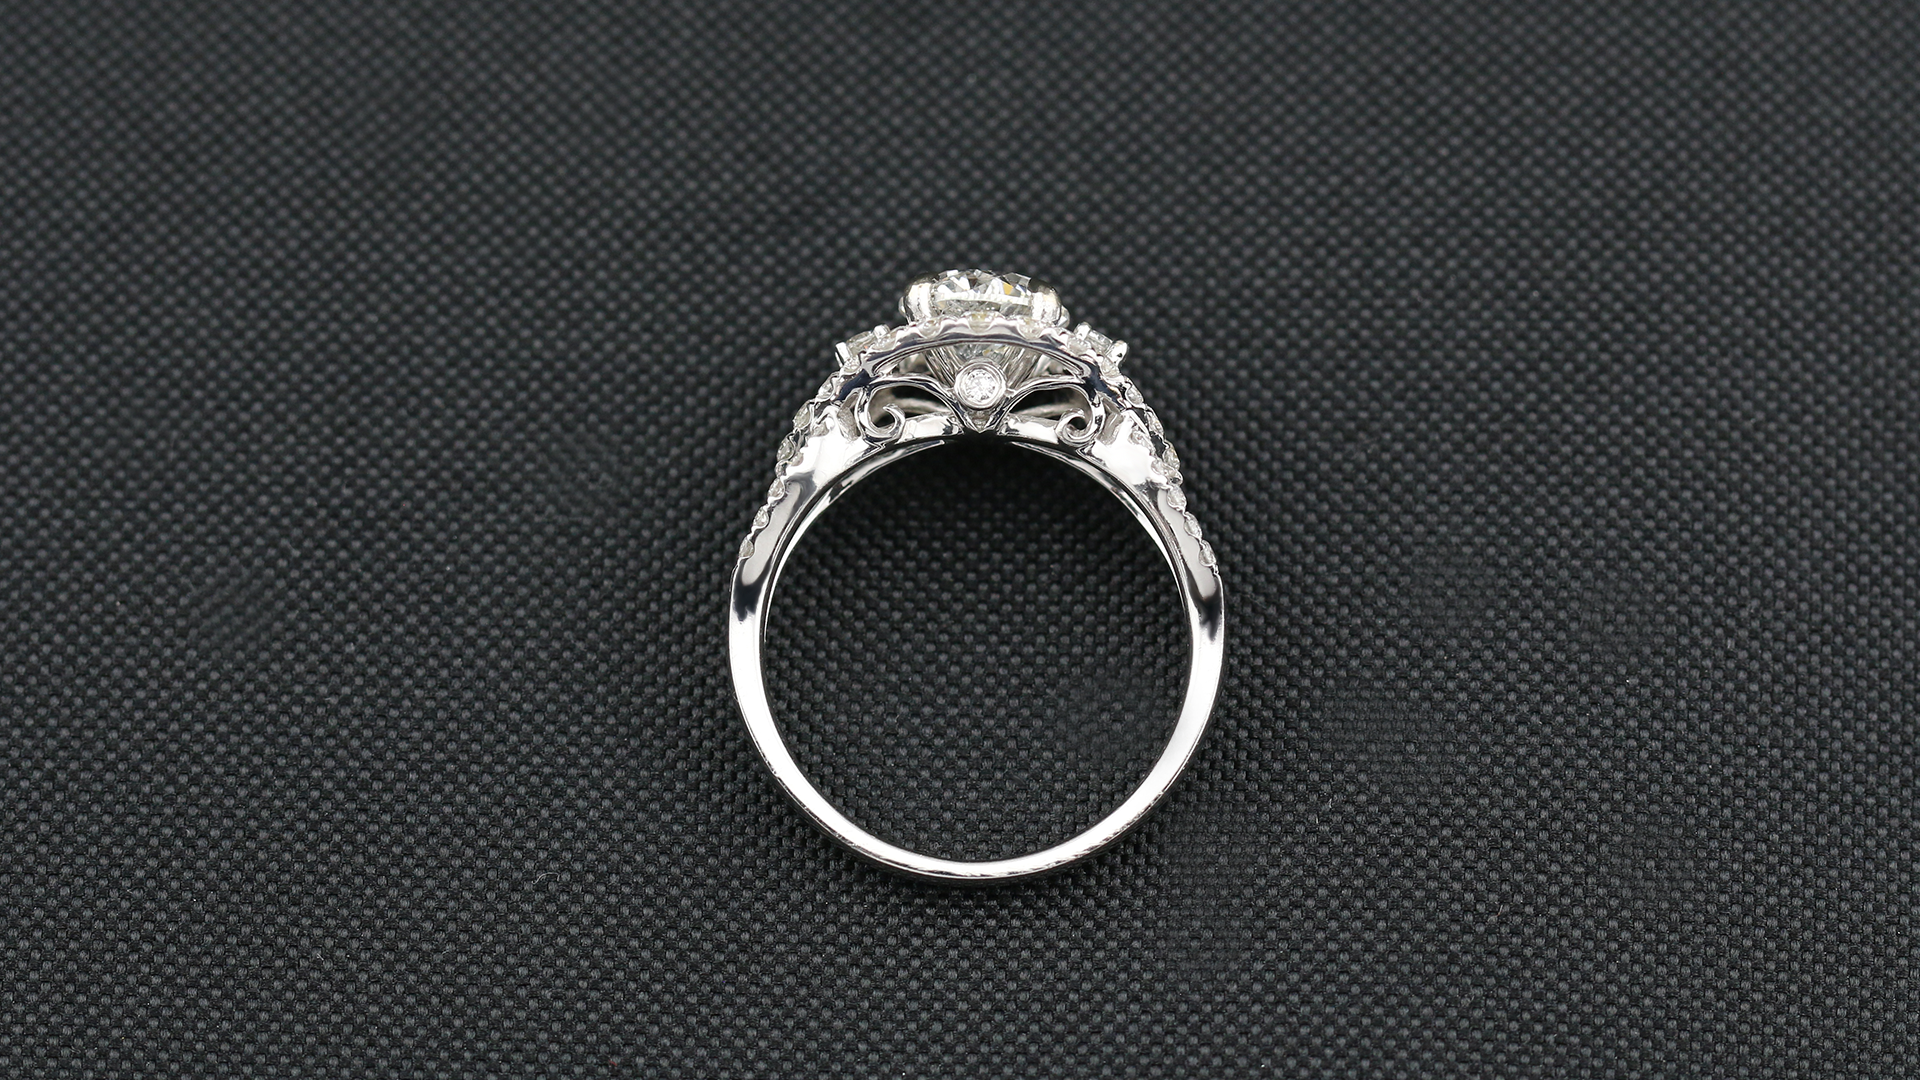 14k White Gold Past Present Future Halo Engagement Ring